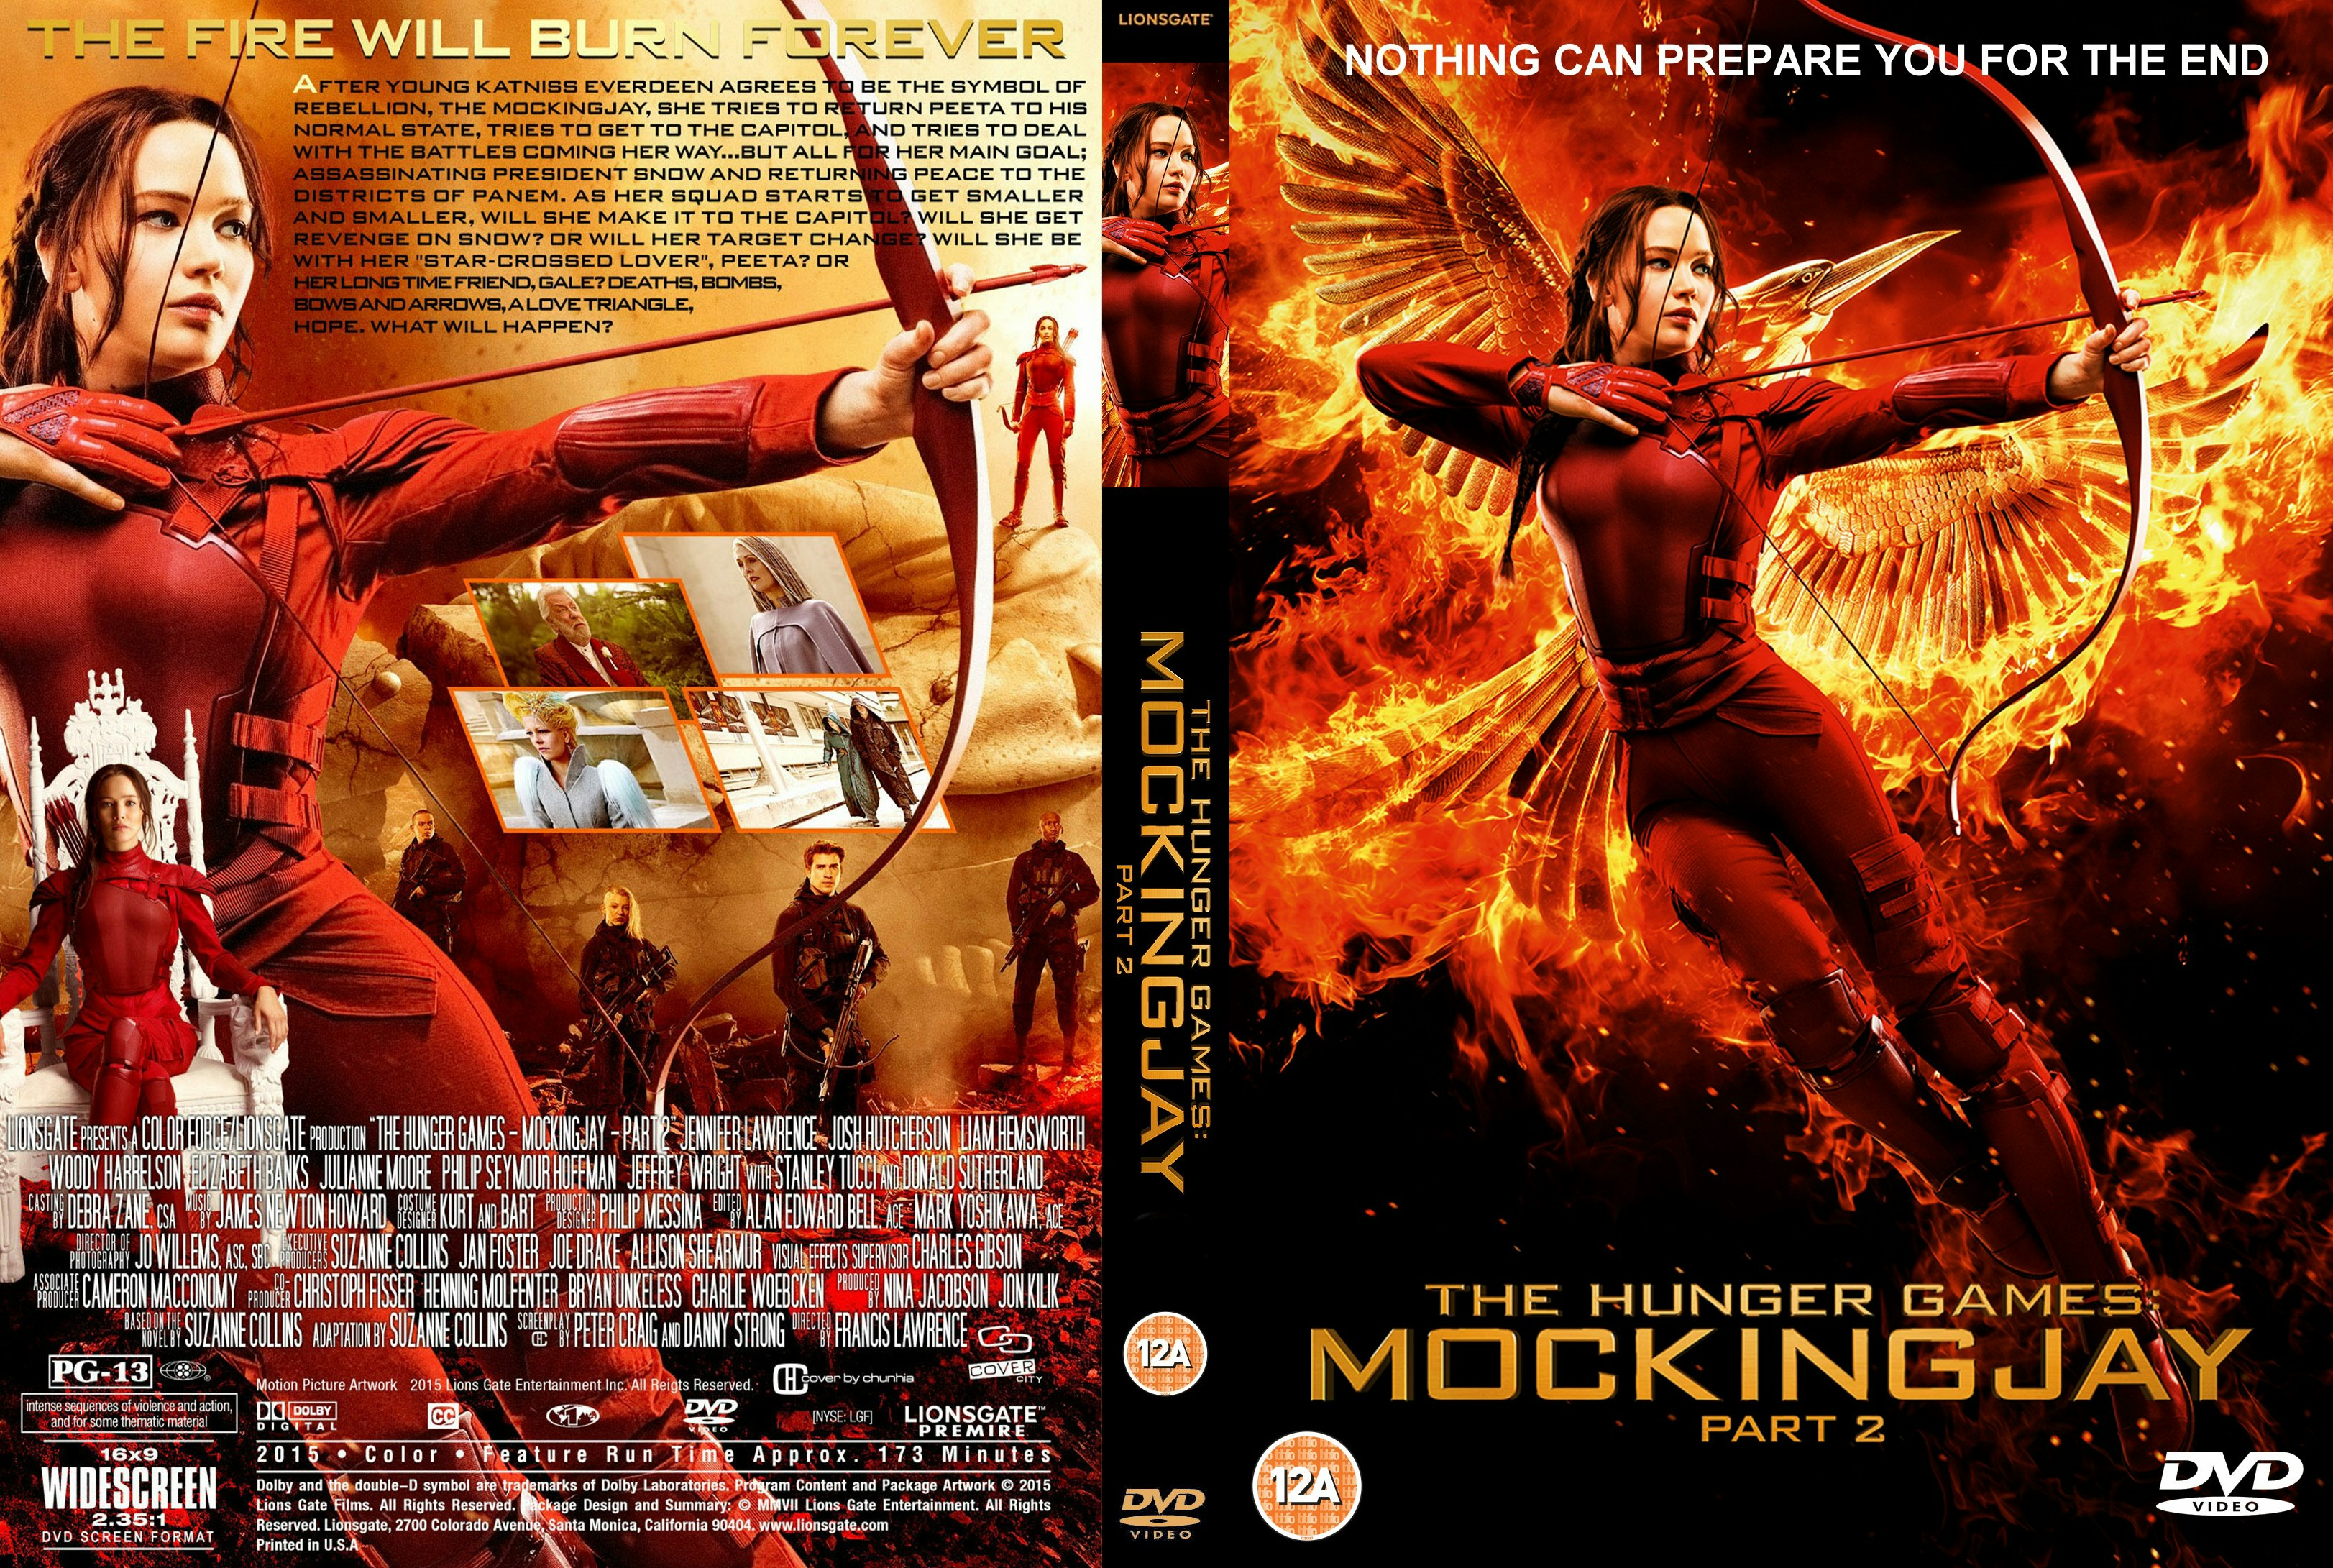 the mocking jay from the hunger games series essay